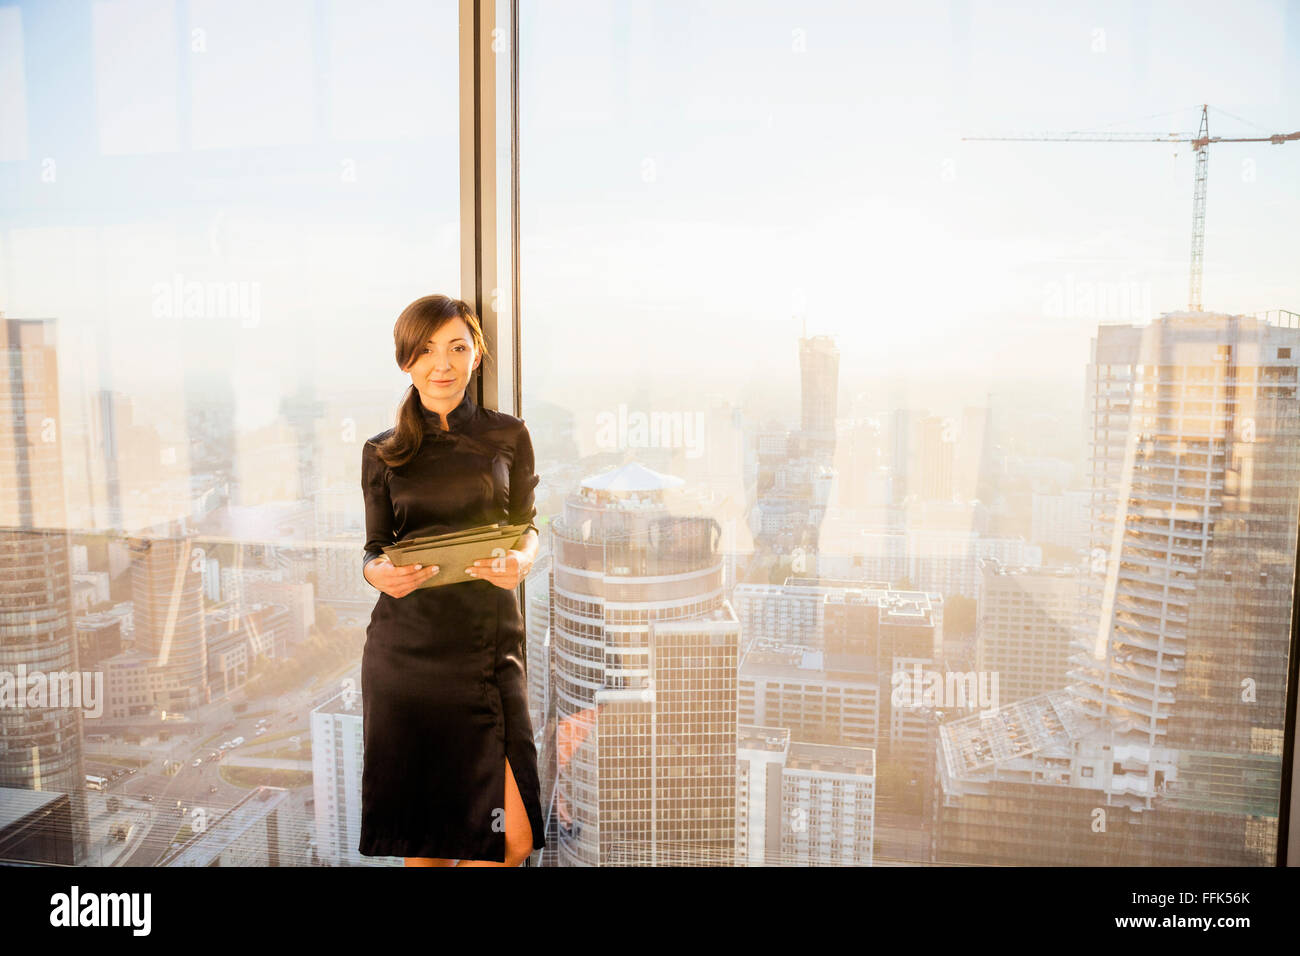 Female architect in office with urban skyline in background - Stock Image